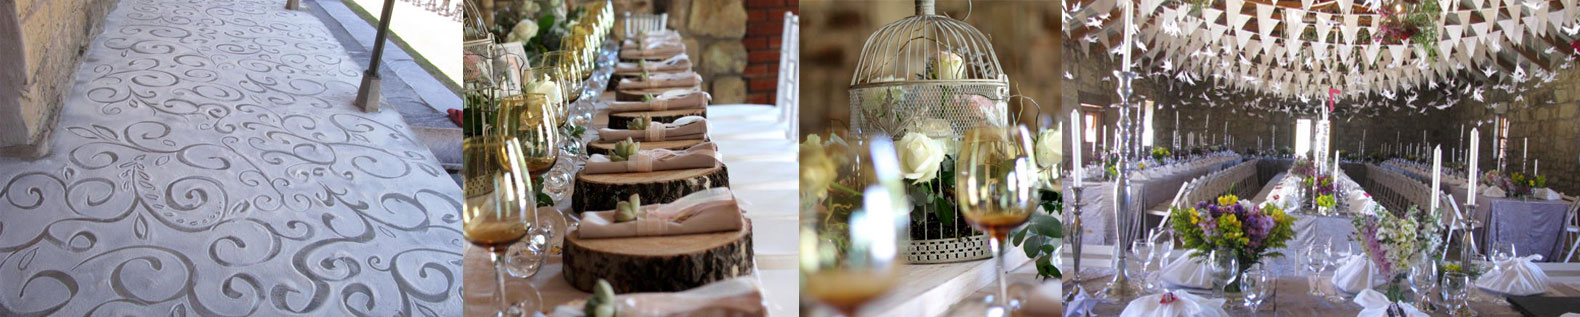 moolmanshoek-accommodation-weddings-venue-accessories-cutlery